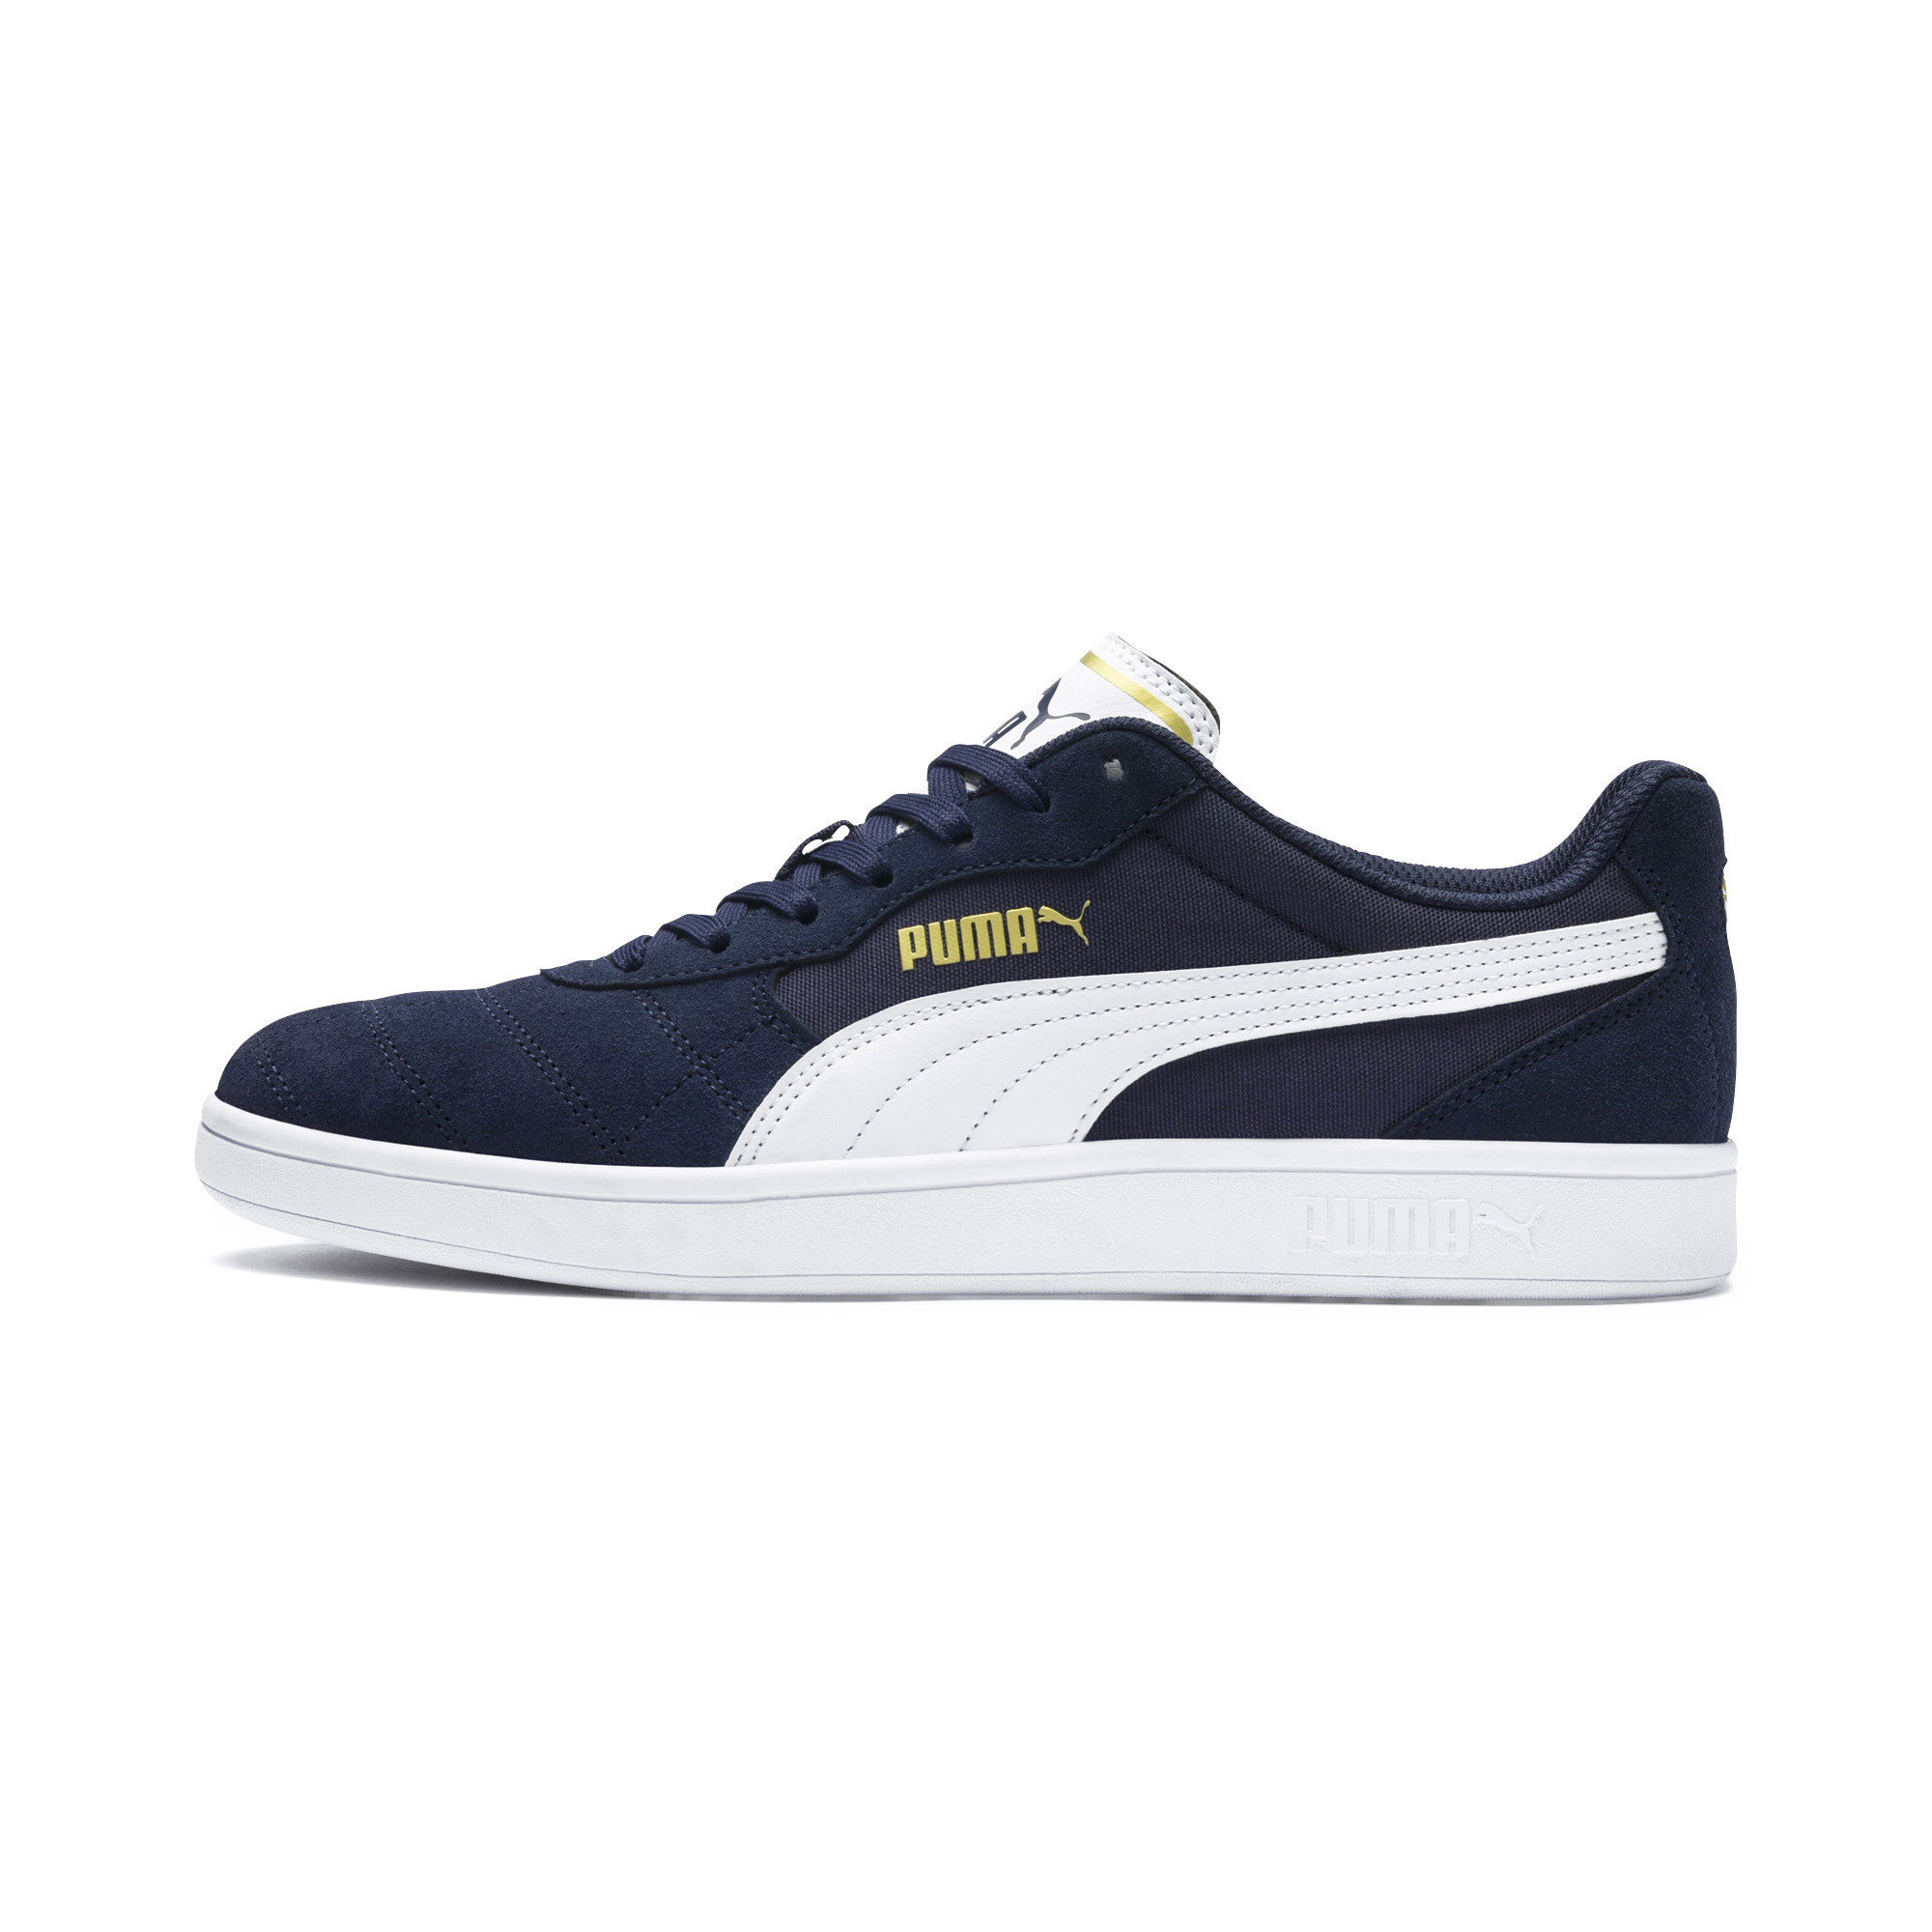 PUMA-Astro-Kick-Sneakers-Men-Shoe-Basics thumbnail 19